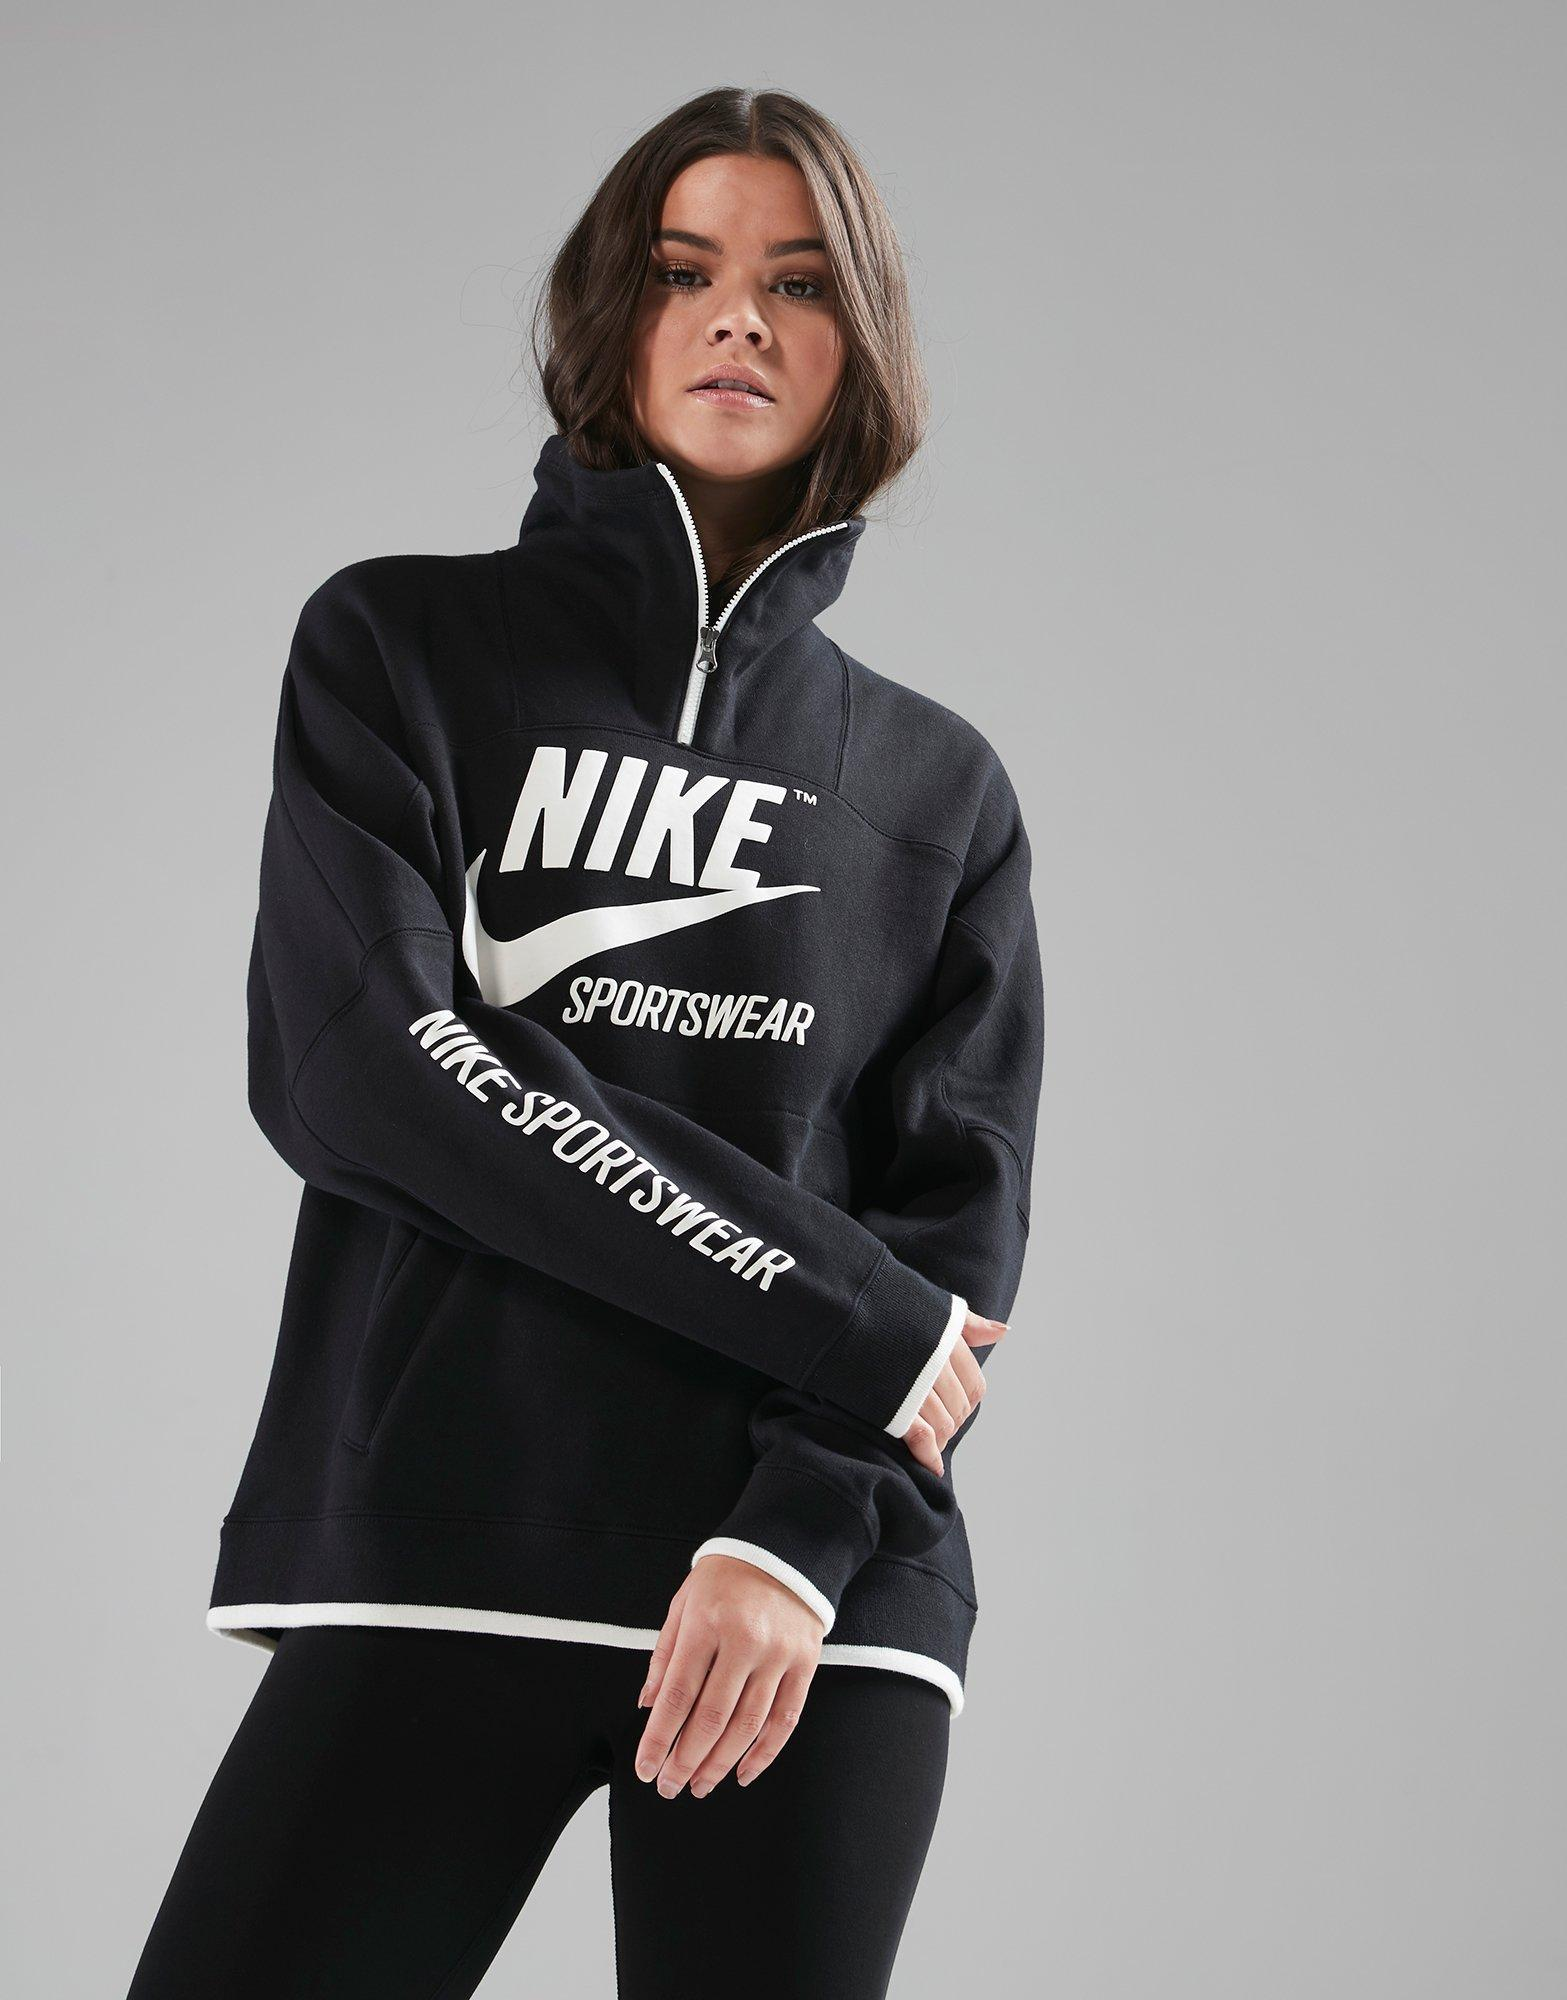 outlet store be58a a7fe4 ... Lyst - Nike Archive Half Zip Track Top in Black  Sportswear Archive  Womens ...